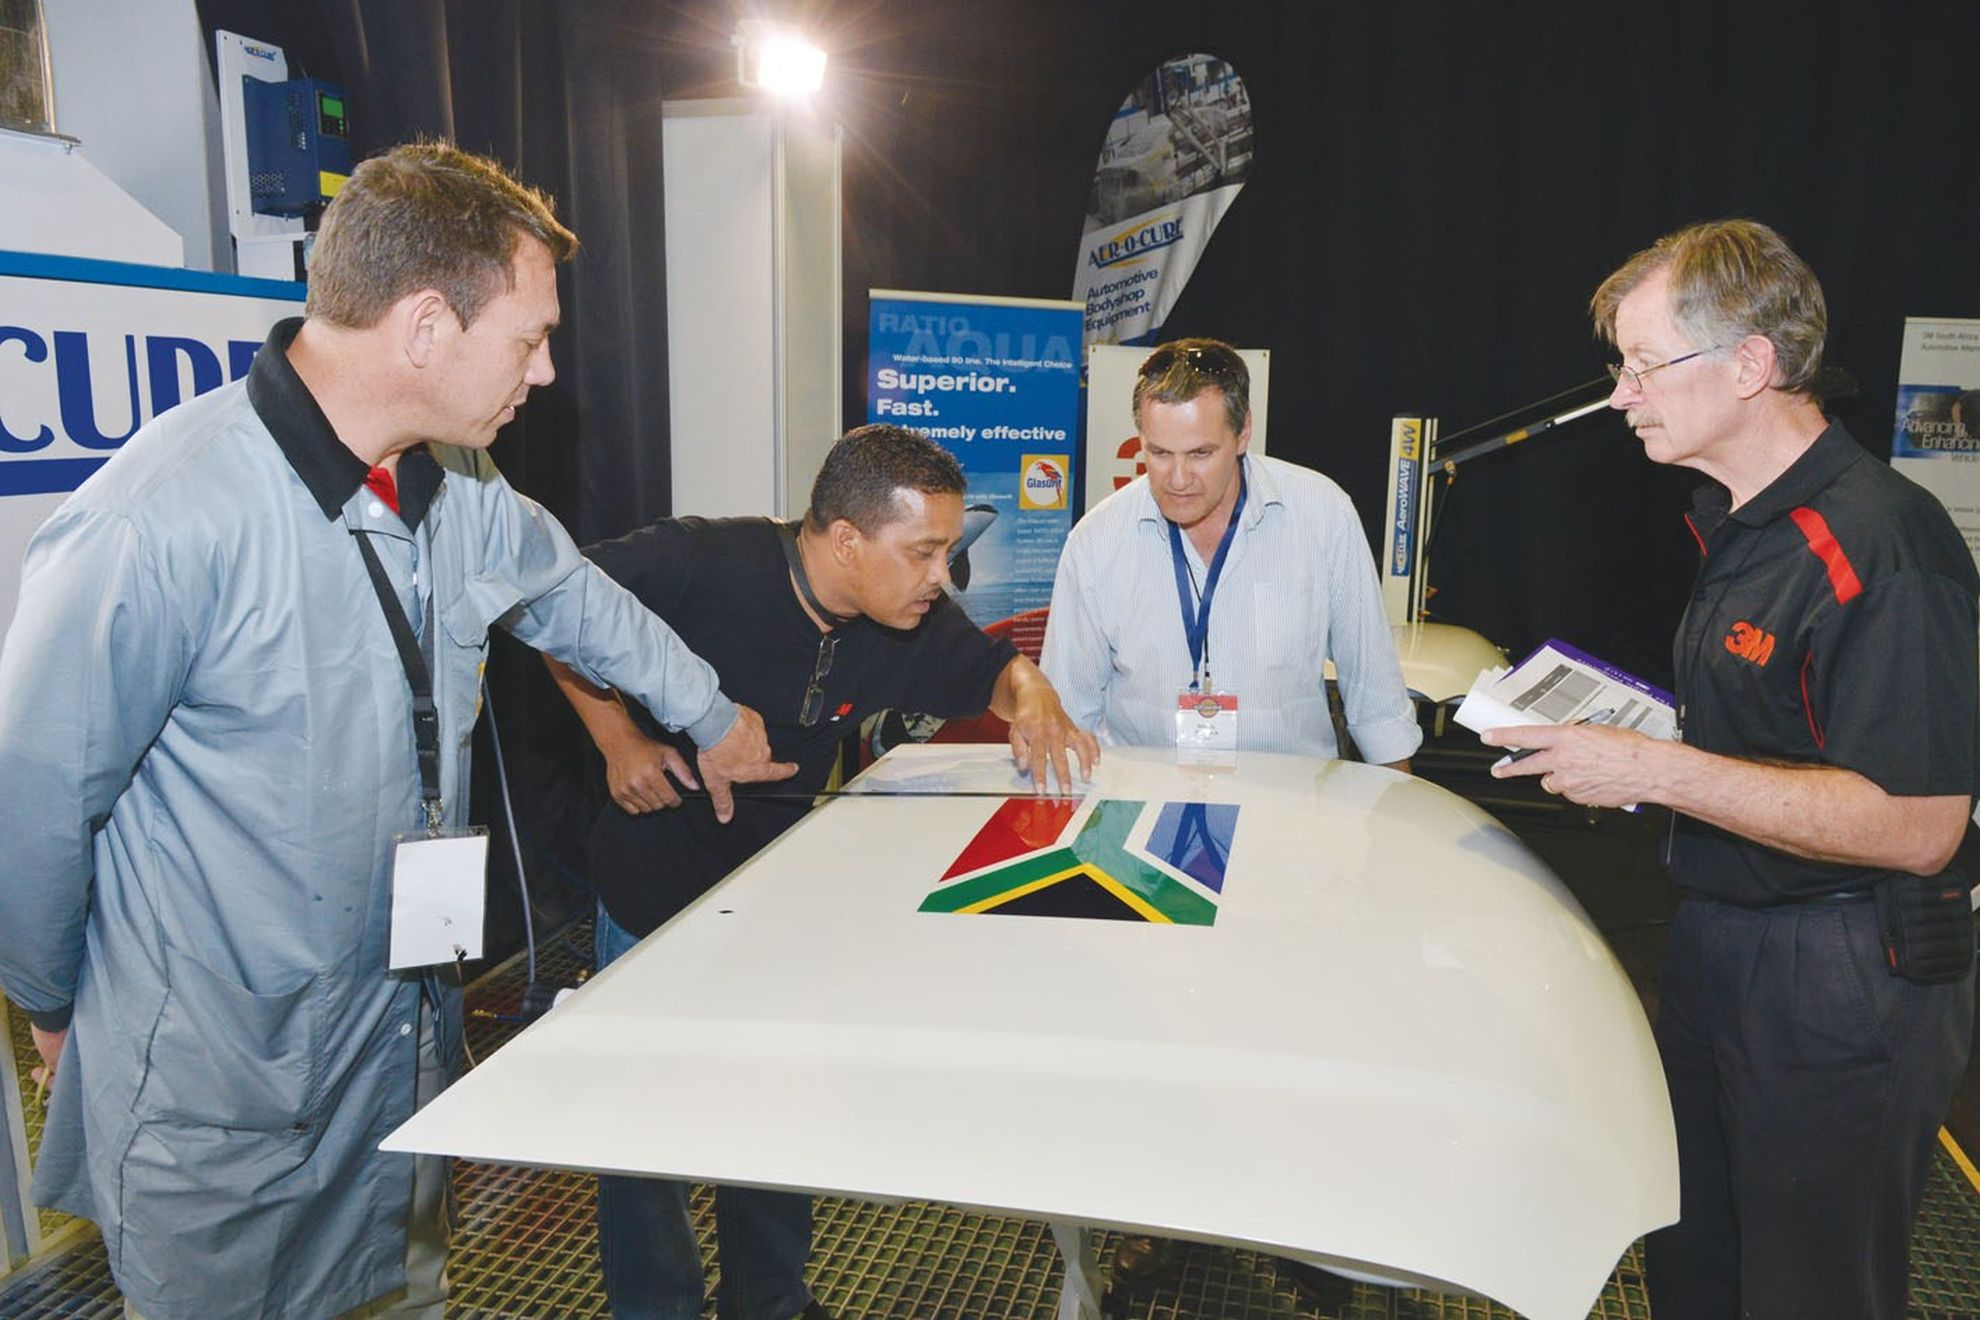 Automechanika-Johannesburg-in-South-Africa-will-provide-final-showdown-for-World-Skills-participants